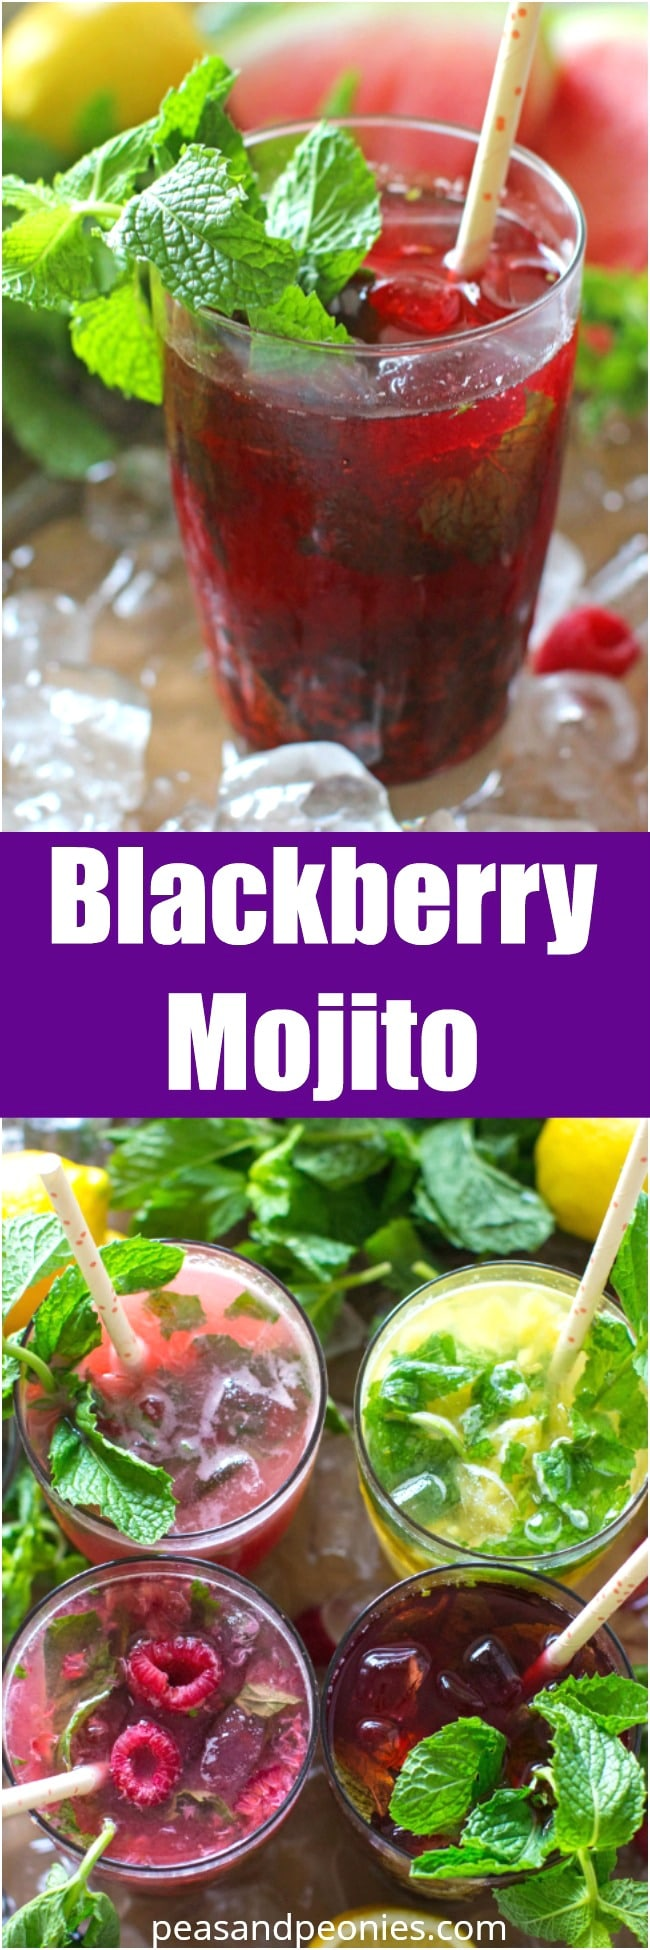 Fruit Mojitos are so easy to make, they are also pretty and refreshing, the perfect summer drink. Blackberry Mojito made with sugar roasted blackberries.